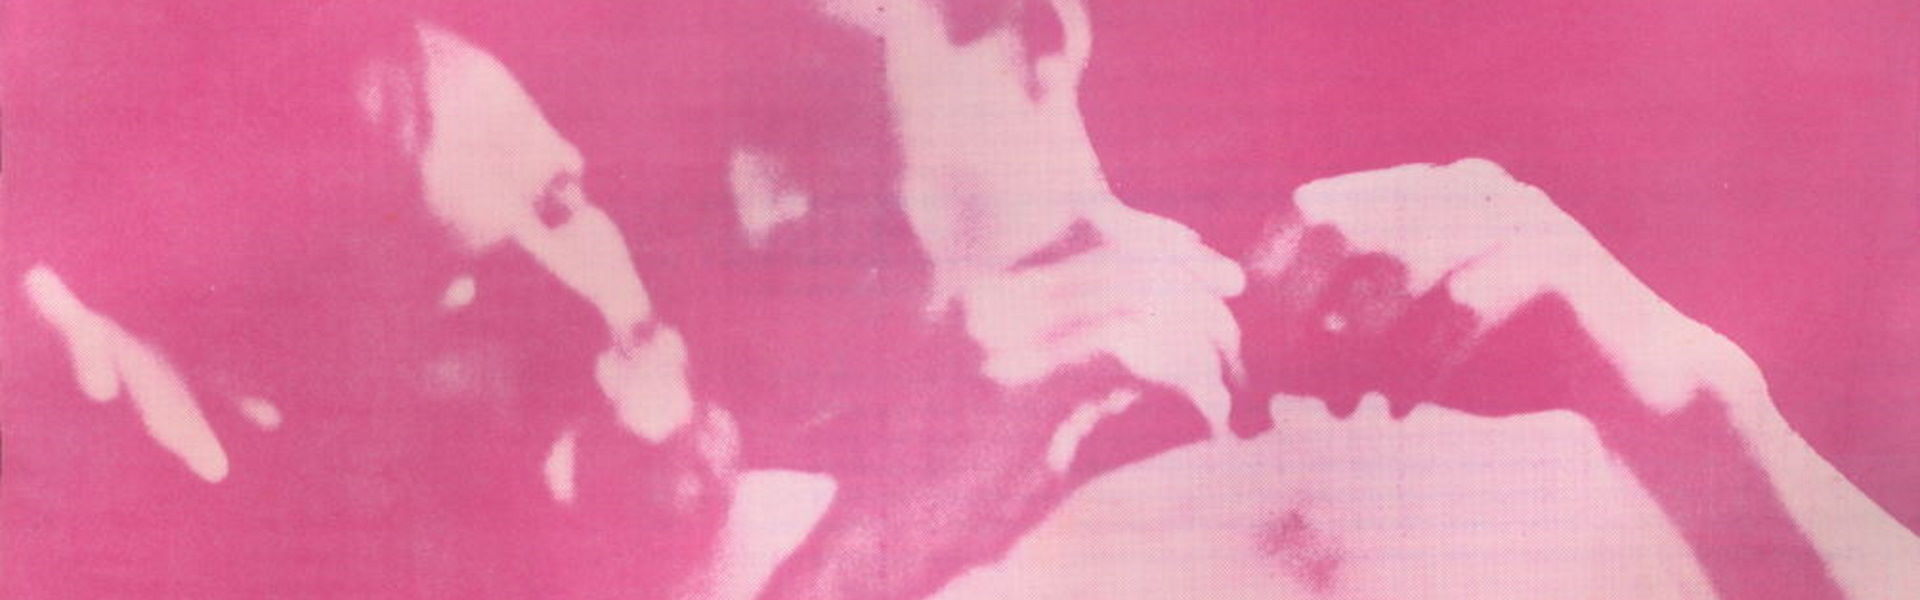 2nd National Homosexual Conference Sydney, August 27-29 (Sydney, 1976), A187 – Banner Web